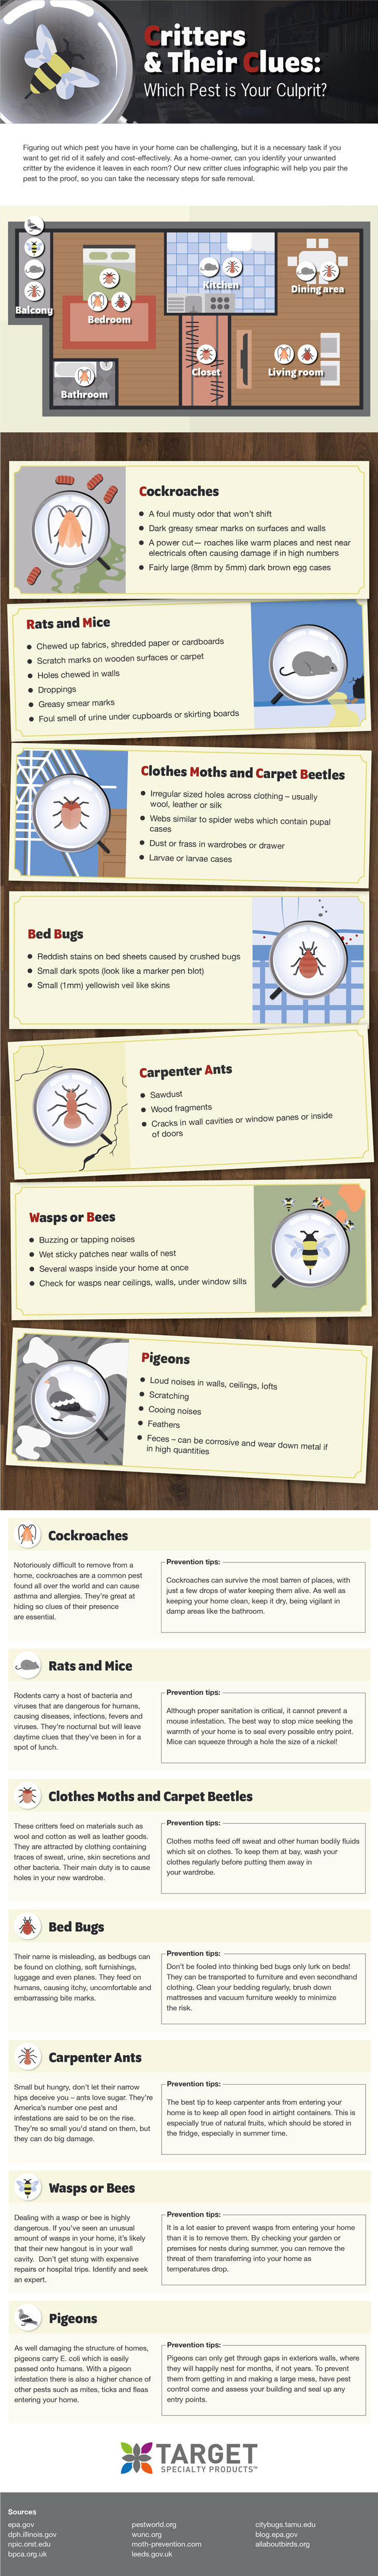 Target Specialty Products' Critter Clues infographic helps homeowners identify and prevent common pests. IMAGE: TARGET SPECIALTY PRODUCTS